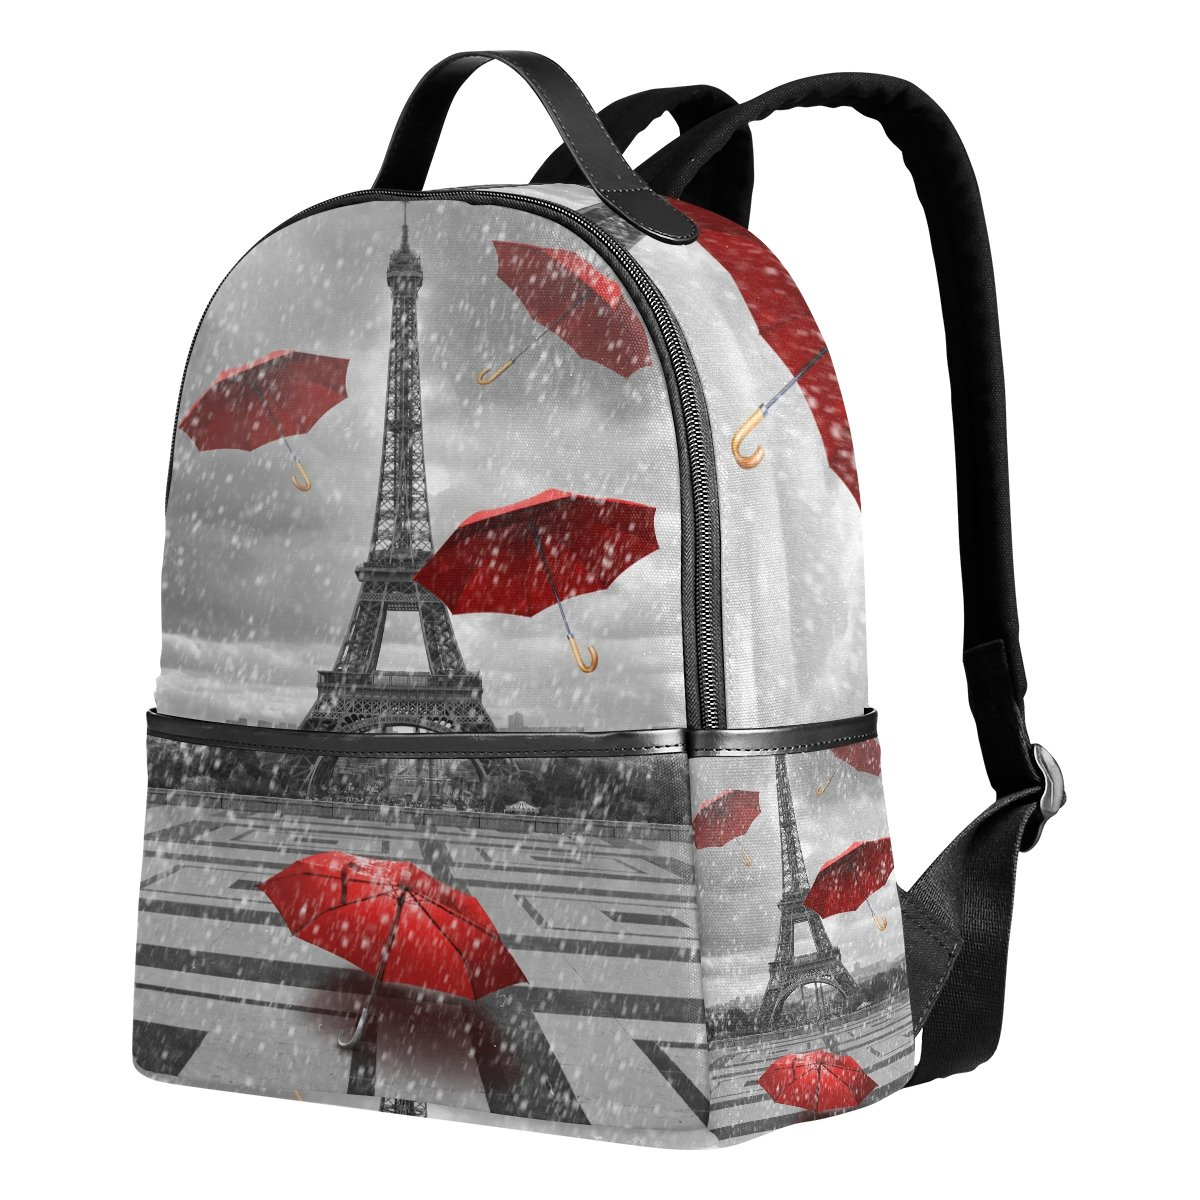 Use4 Red Umbrella Paris Eiffel Tower France Polyester Backpack School Travel Bag